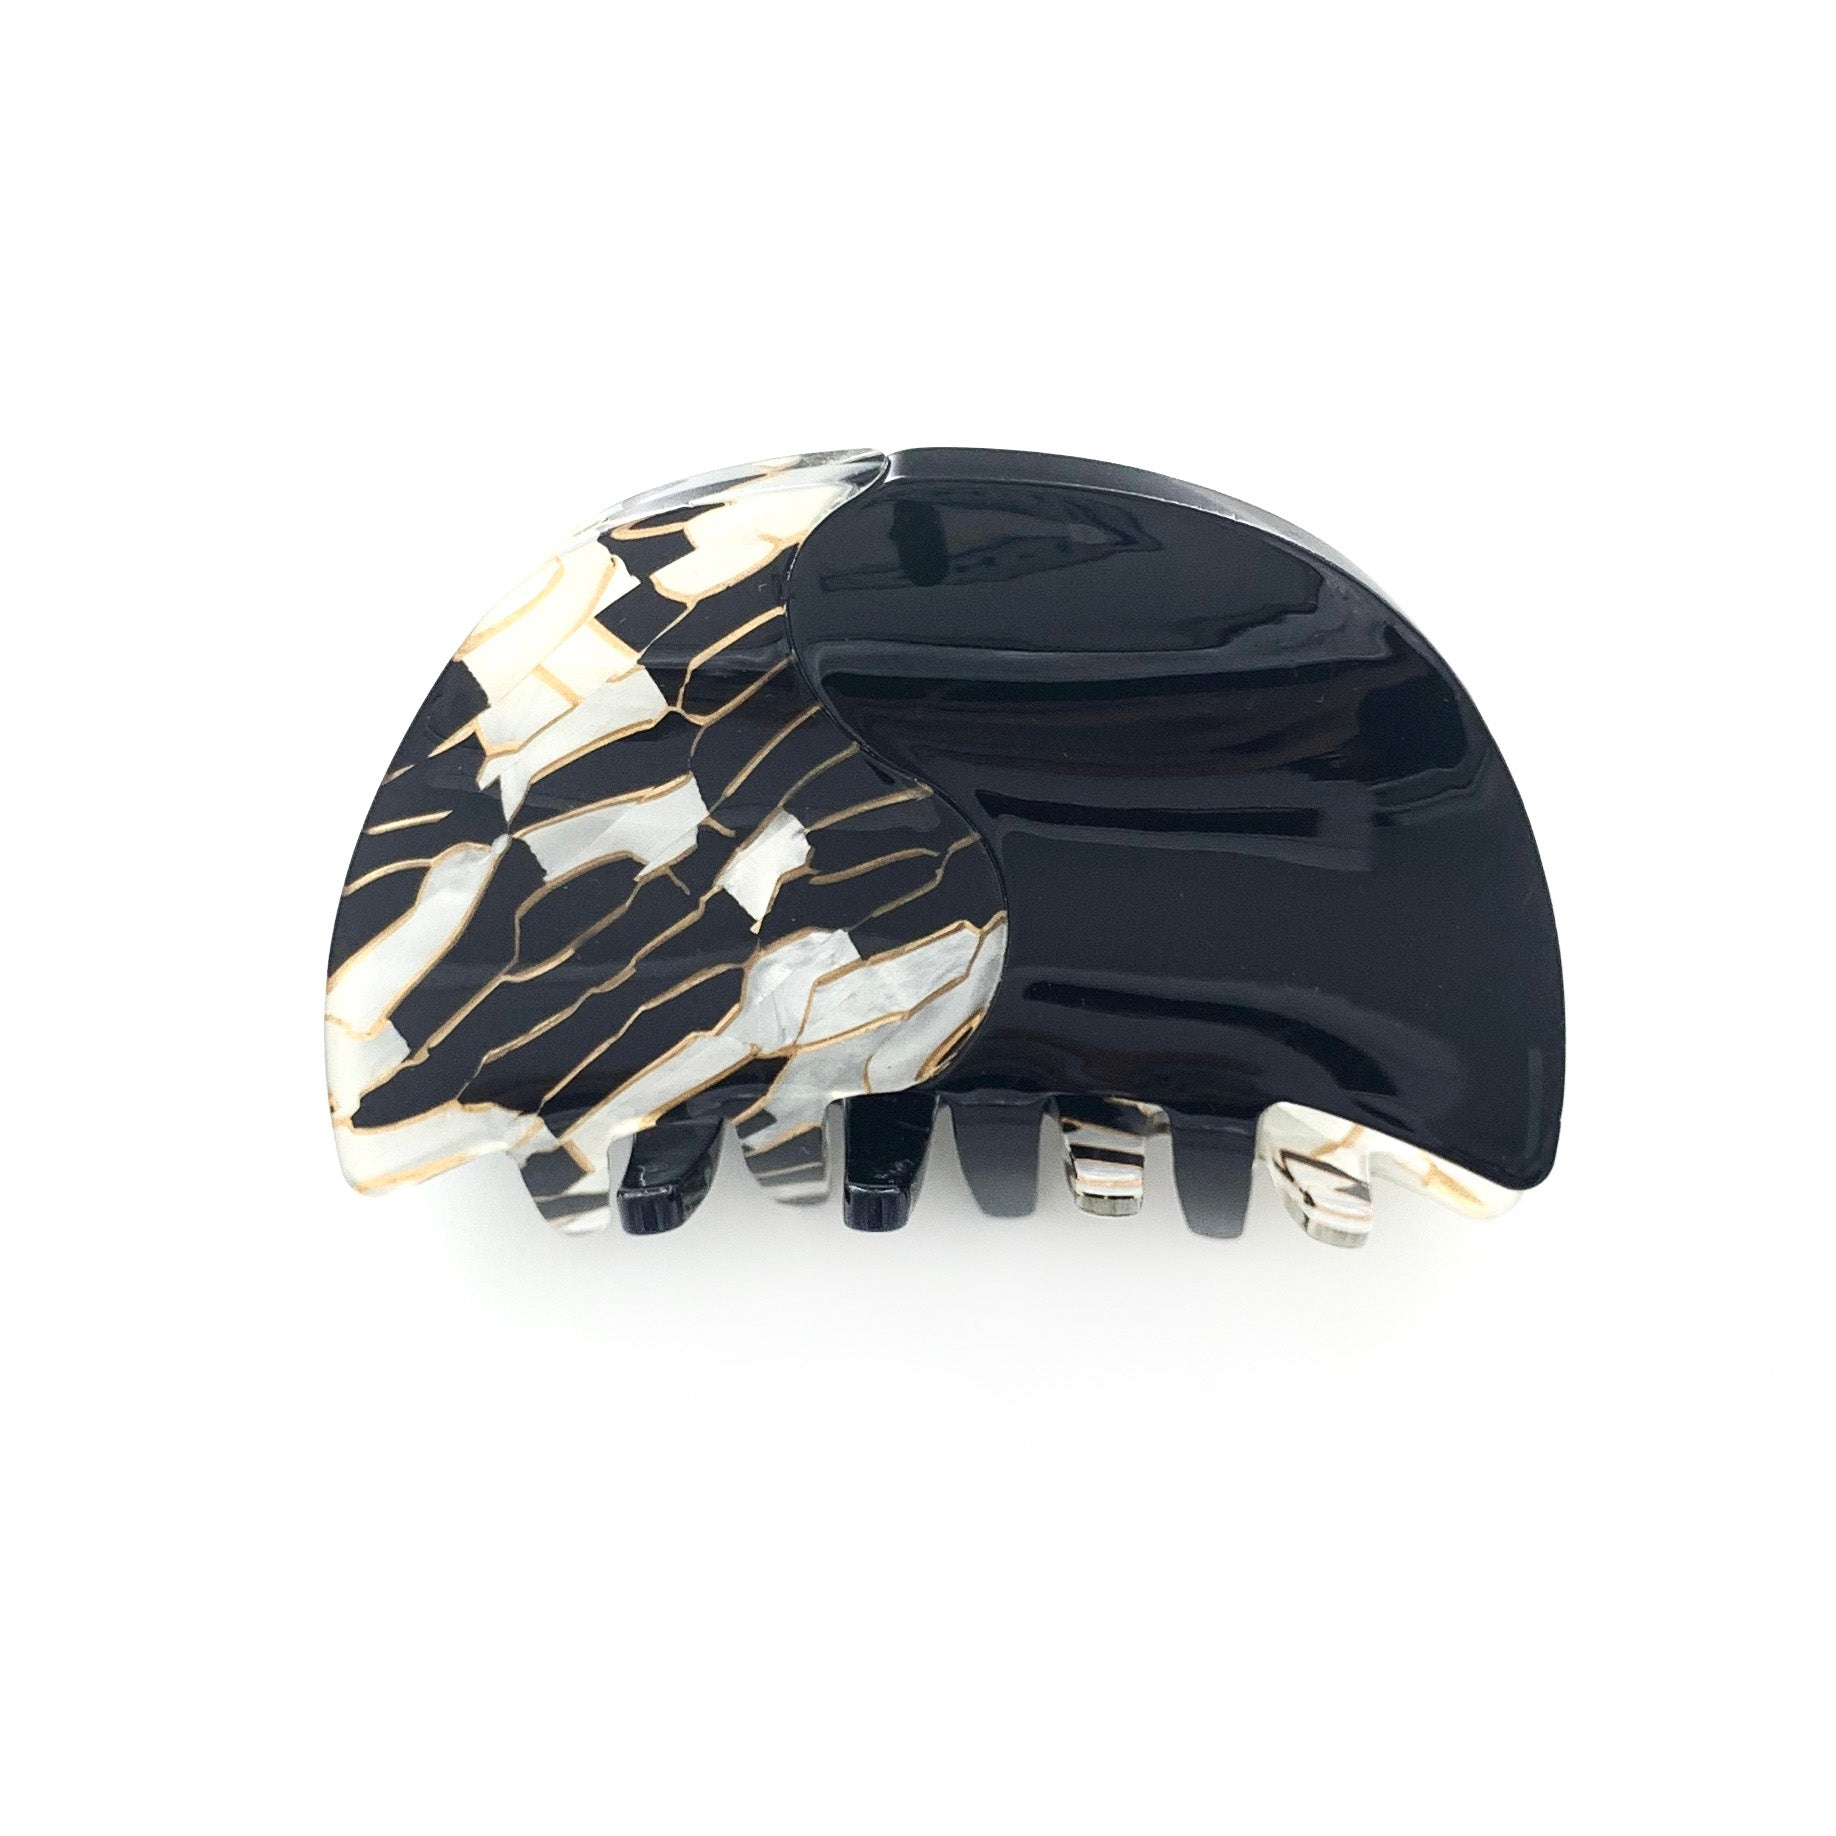 Black hair clip with gold and white pearly patterns - rounded